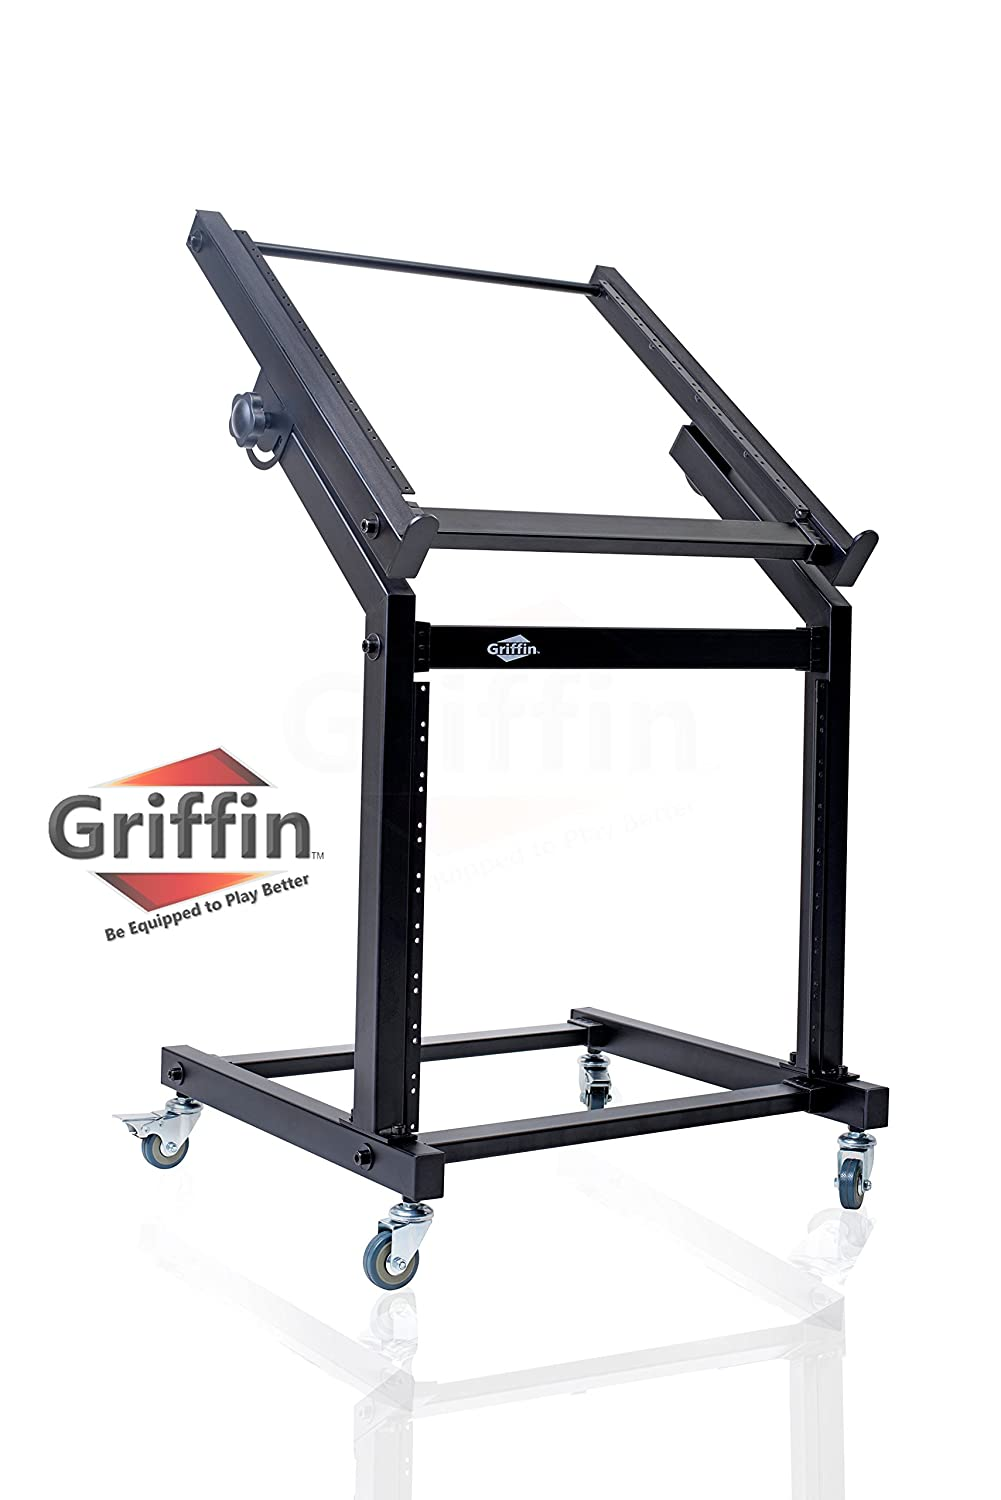 Rack Mount Rolling Stand and Adjustable Top Mixer Platform Mount 19U by Griffin|Cart Holder for Music Studio Pro Audio Recording Cabinet|Stage Equipment DJ PA Gear Display Case for Amplifiers, Effects MD-WS993